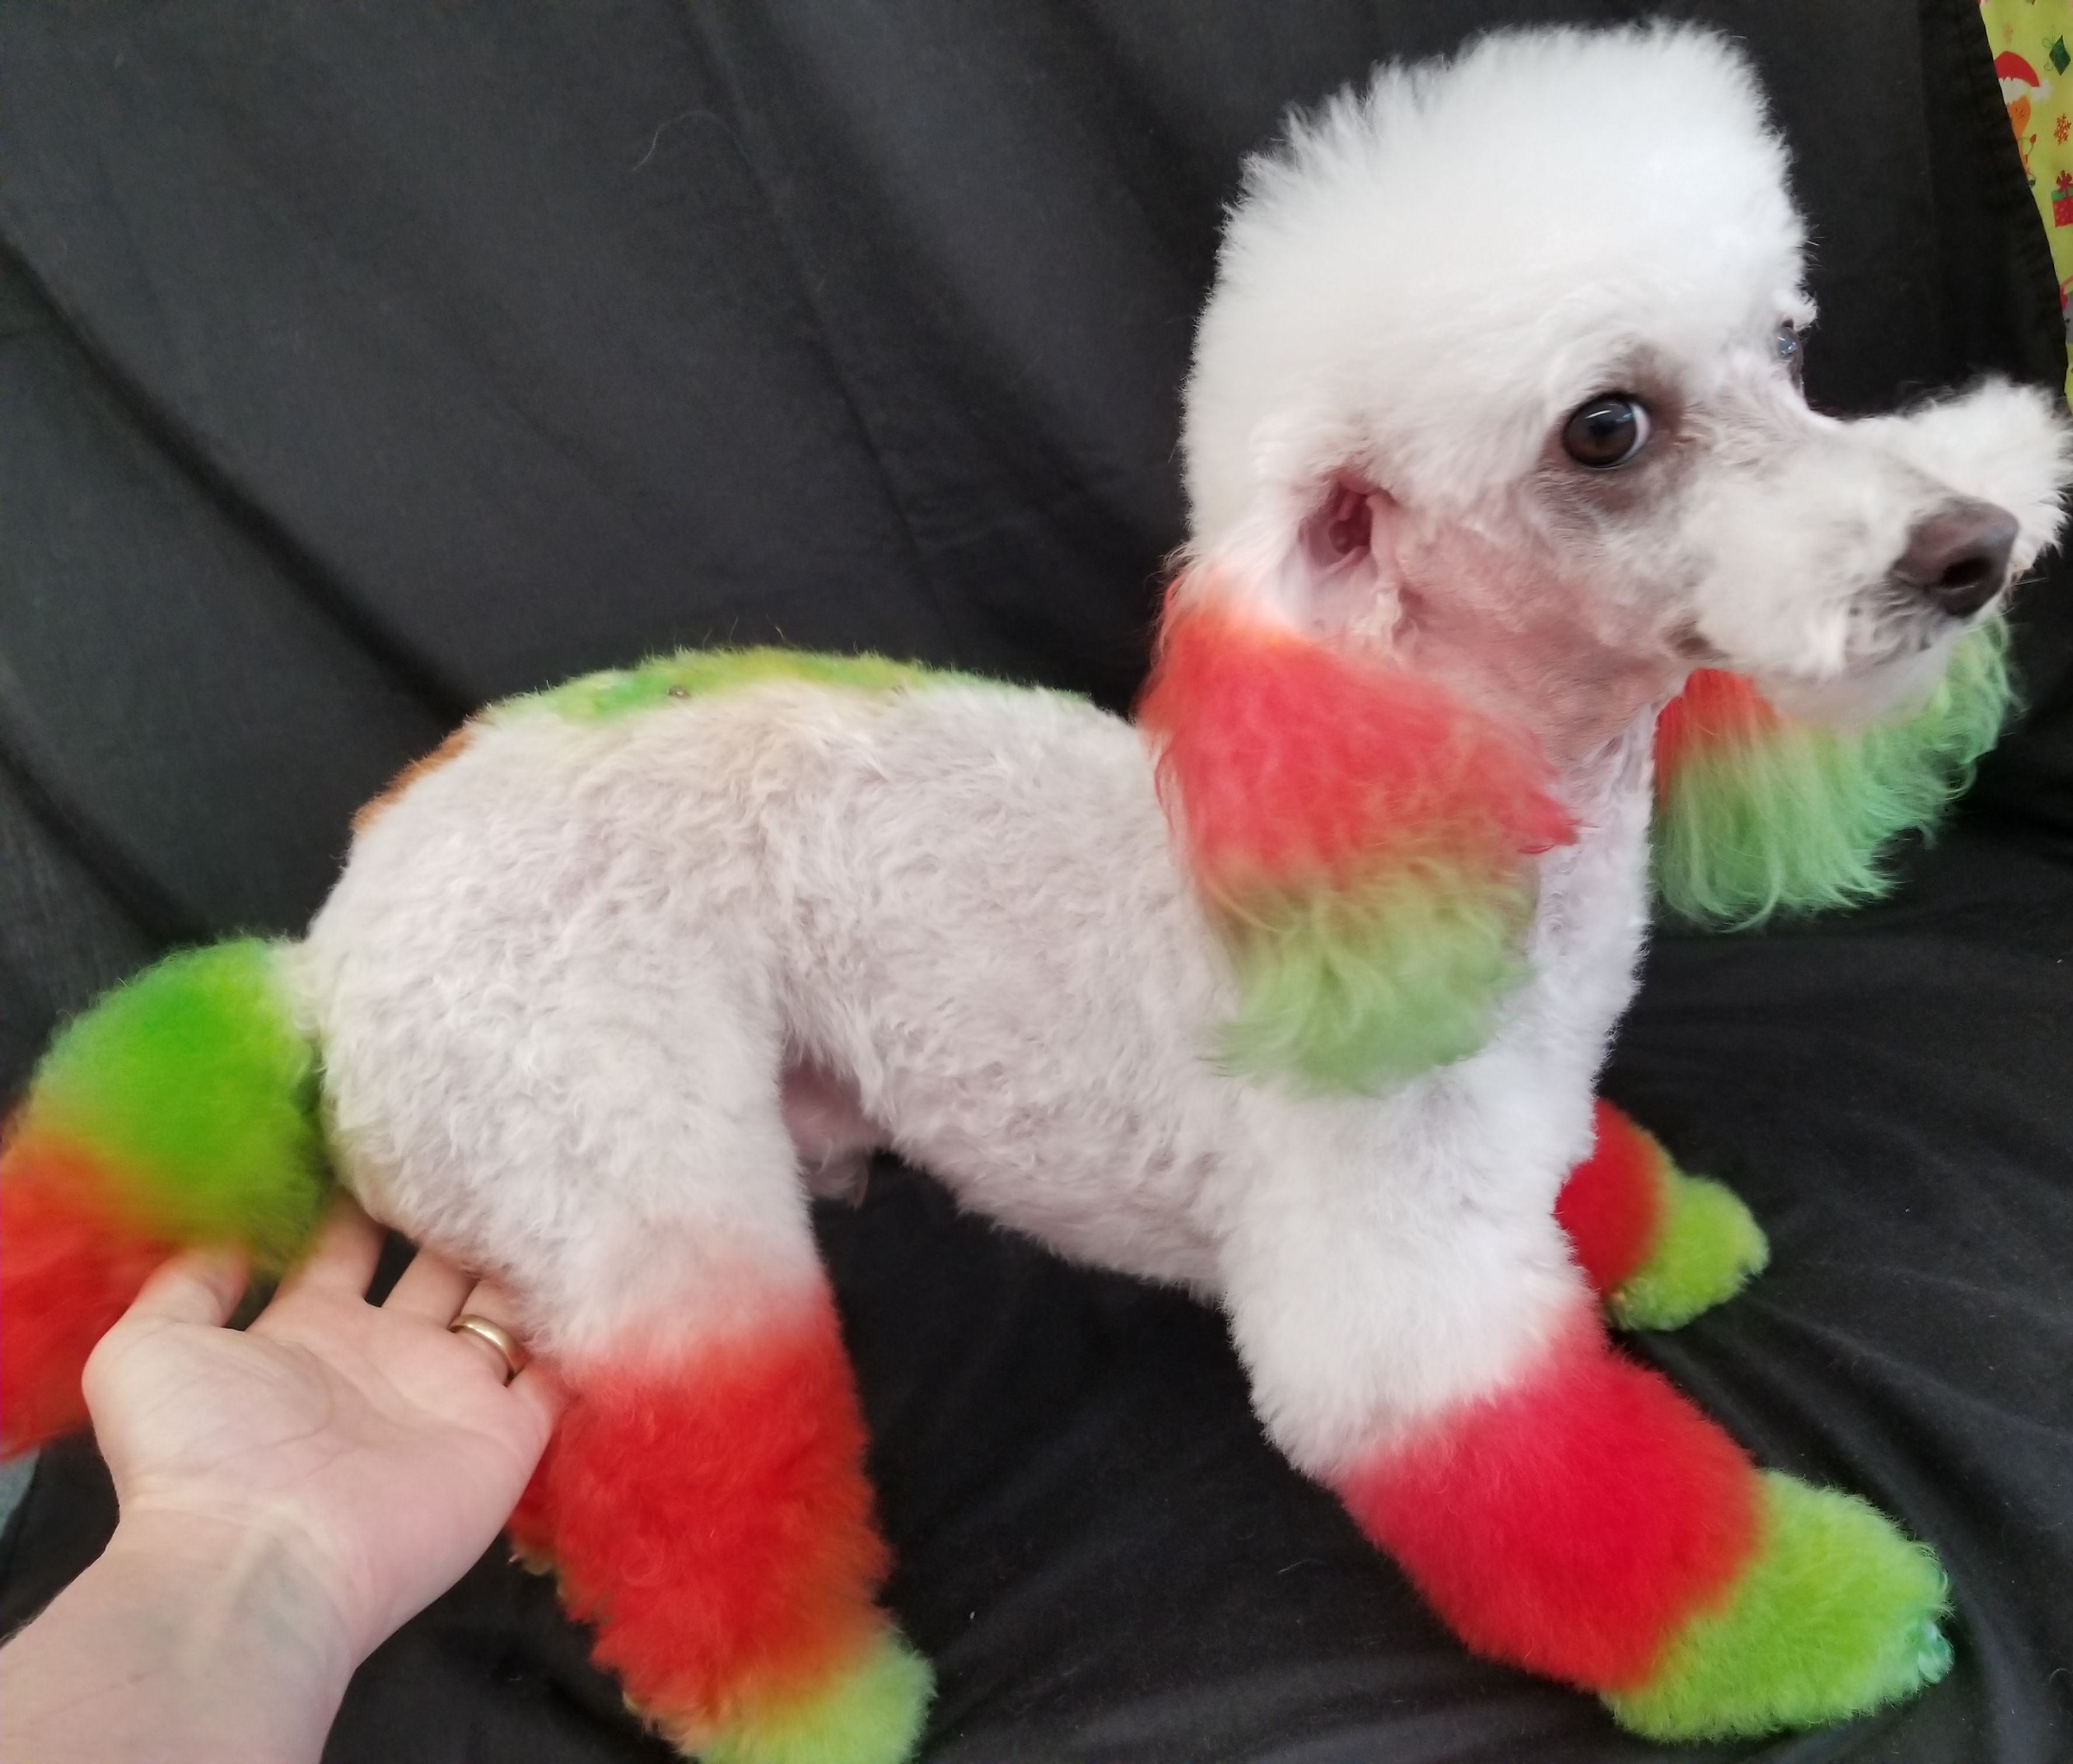 From Candy Corn To Christmas Tree Odin Is So Excited And Getting Ready To The Christmas Coming Eika S R Haas Shared Creative Grooming Dog Hair Dye Dog Hair